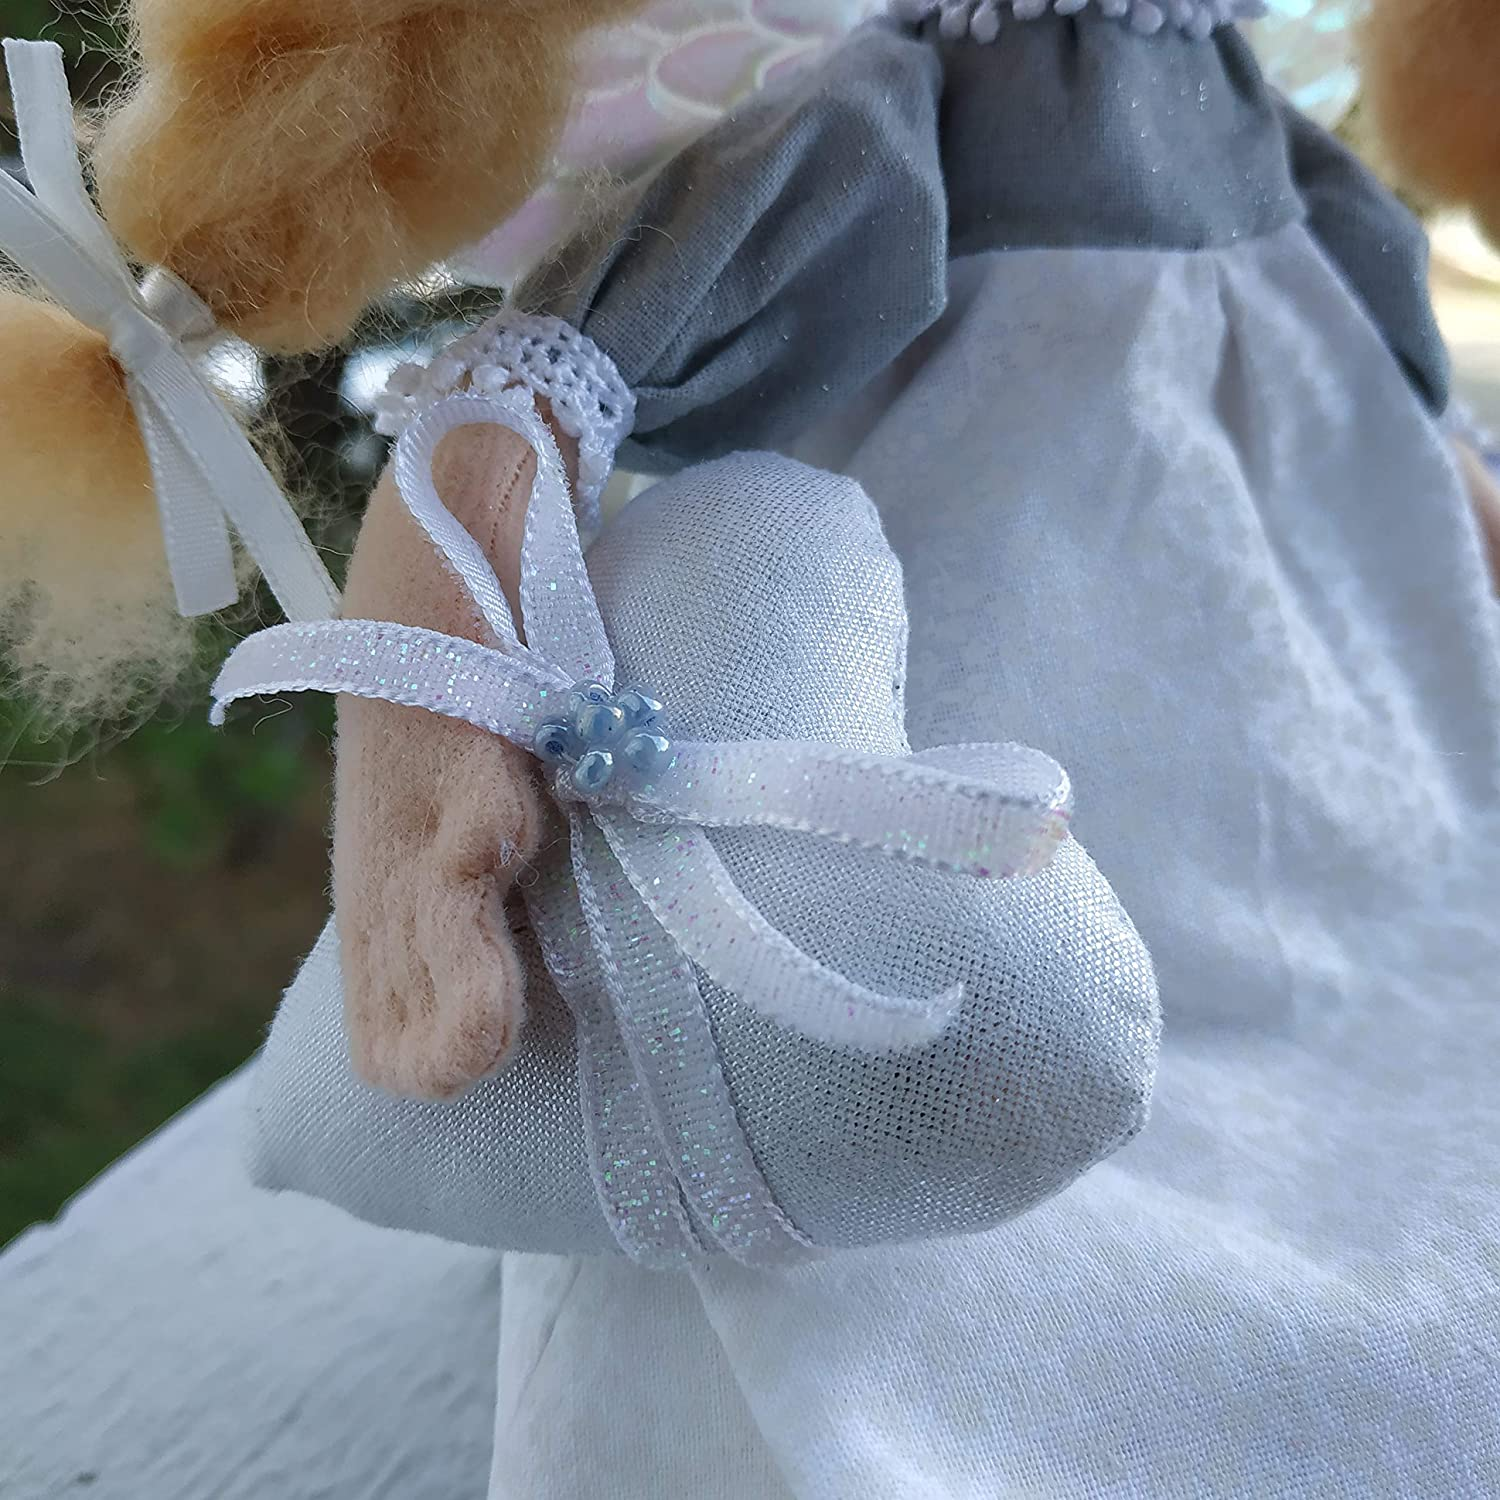 Cute Angel interior decorative gift doll with heart Shelf sitting soft rag doll girl in white and silver for nursery